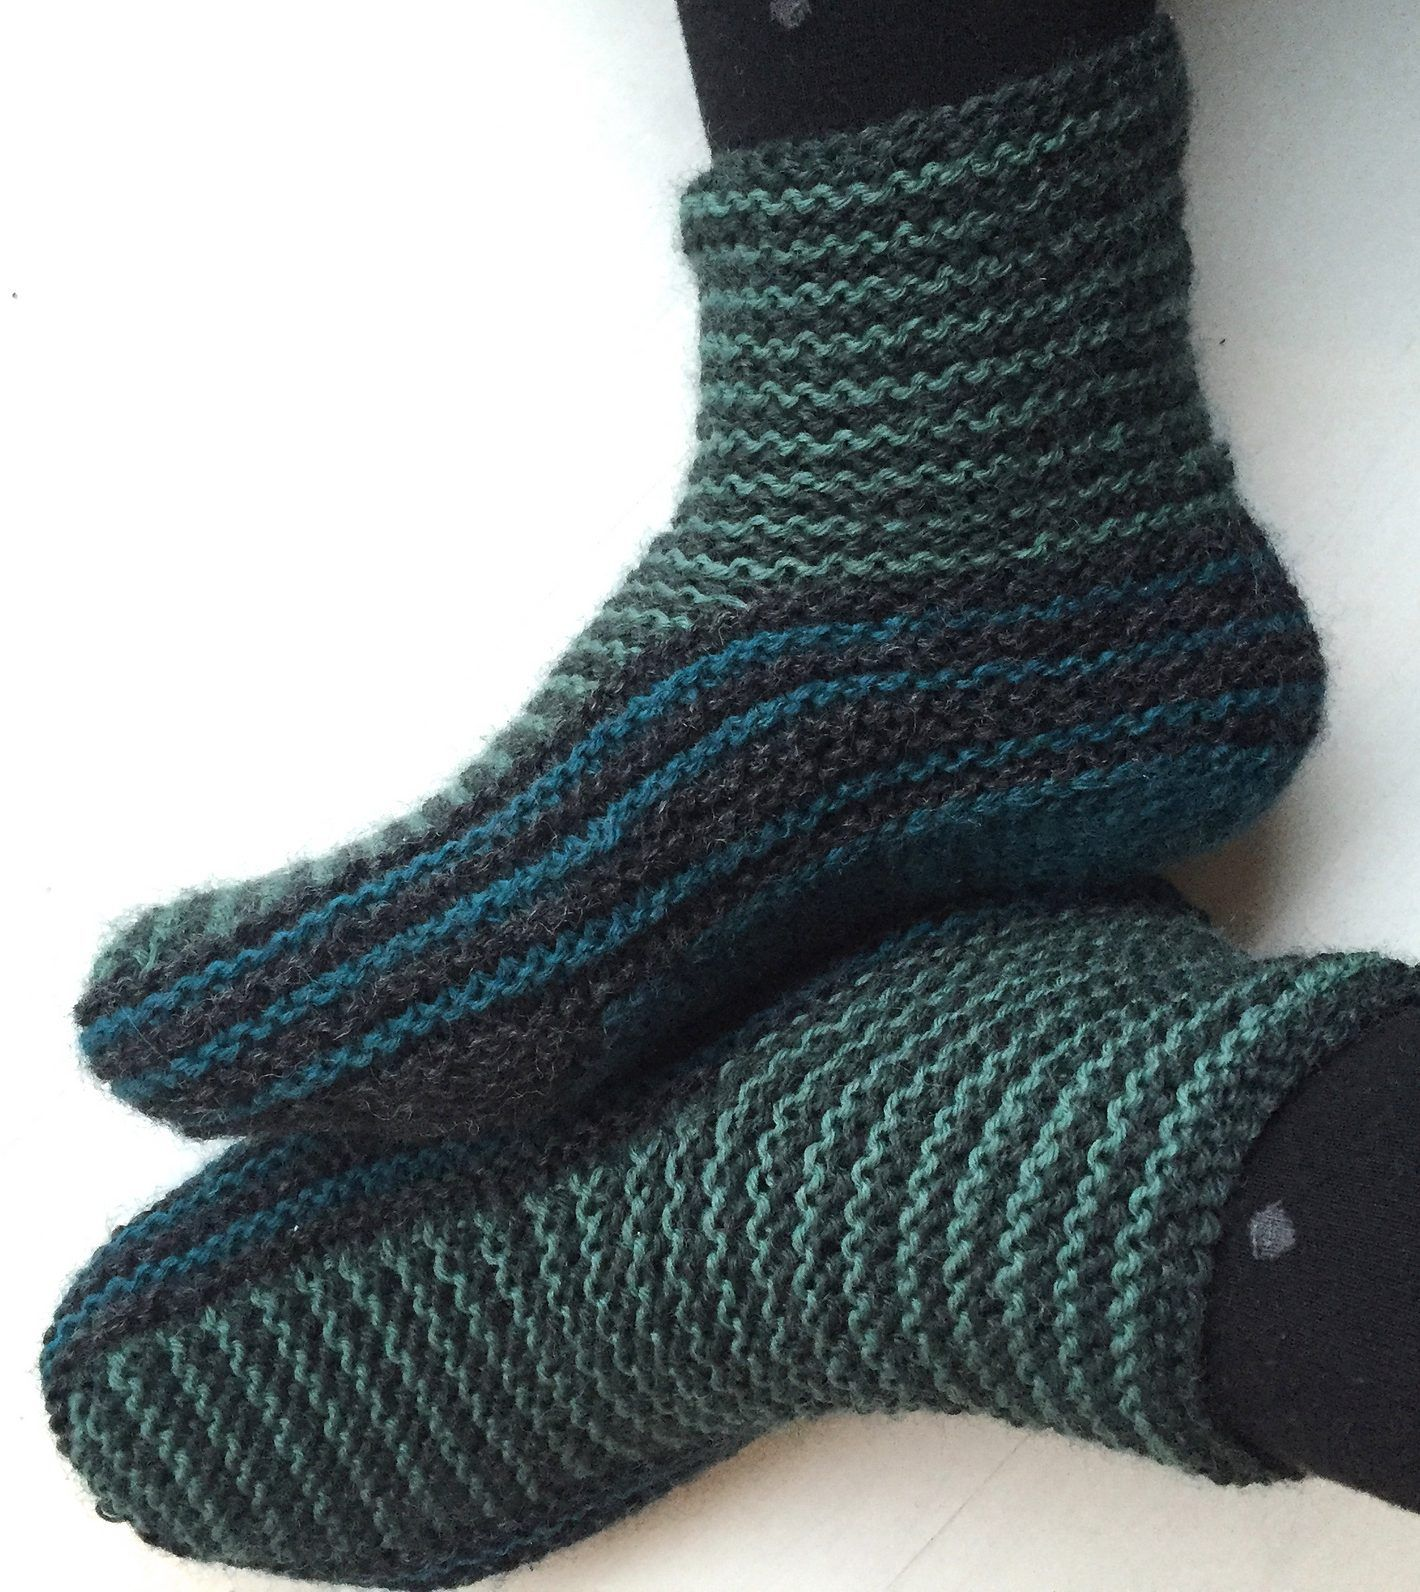 Slipper Patterns Knitting : Free Knitting Pattern for Grown-Up Garter Booties - Maria Sus designed these ...